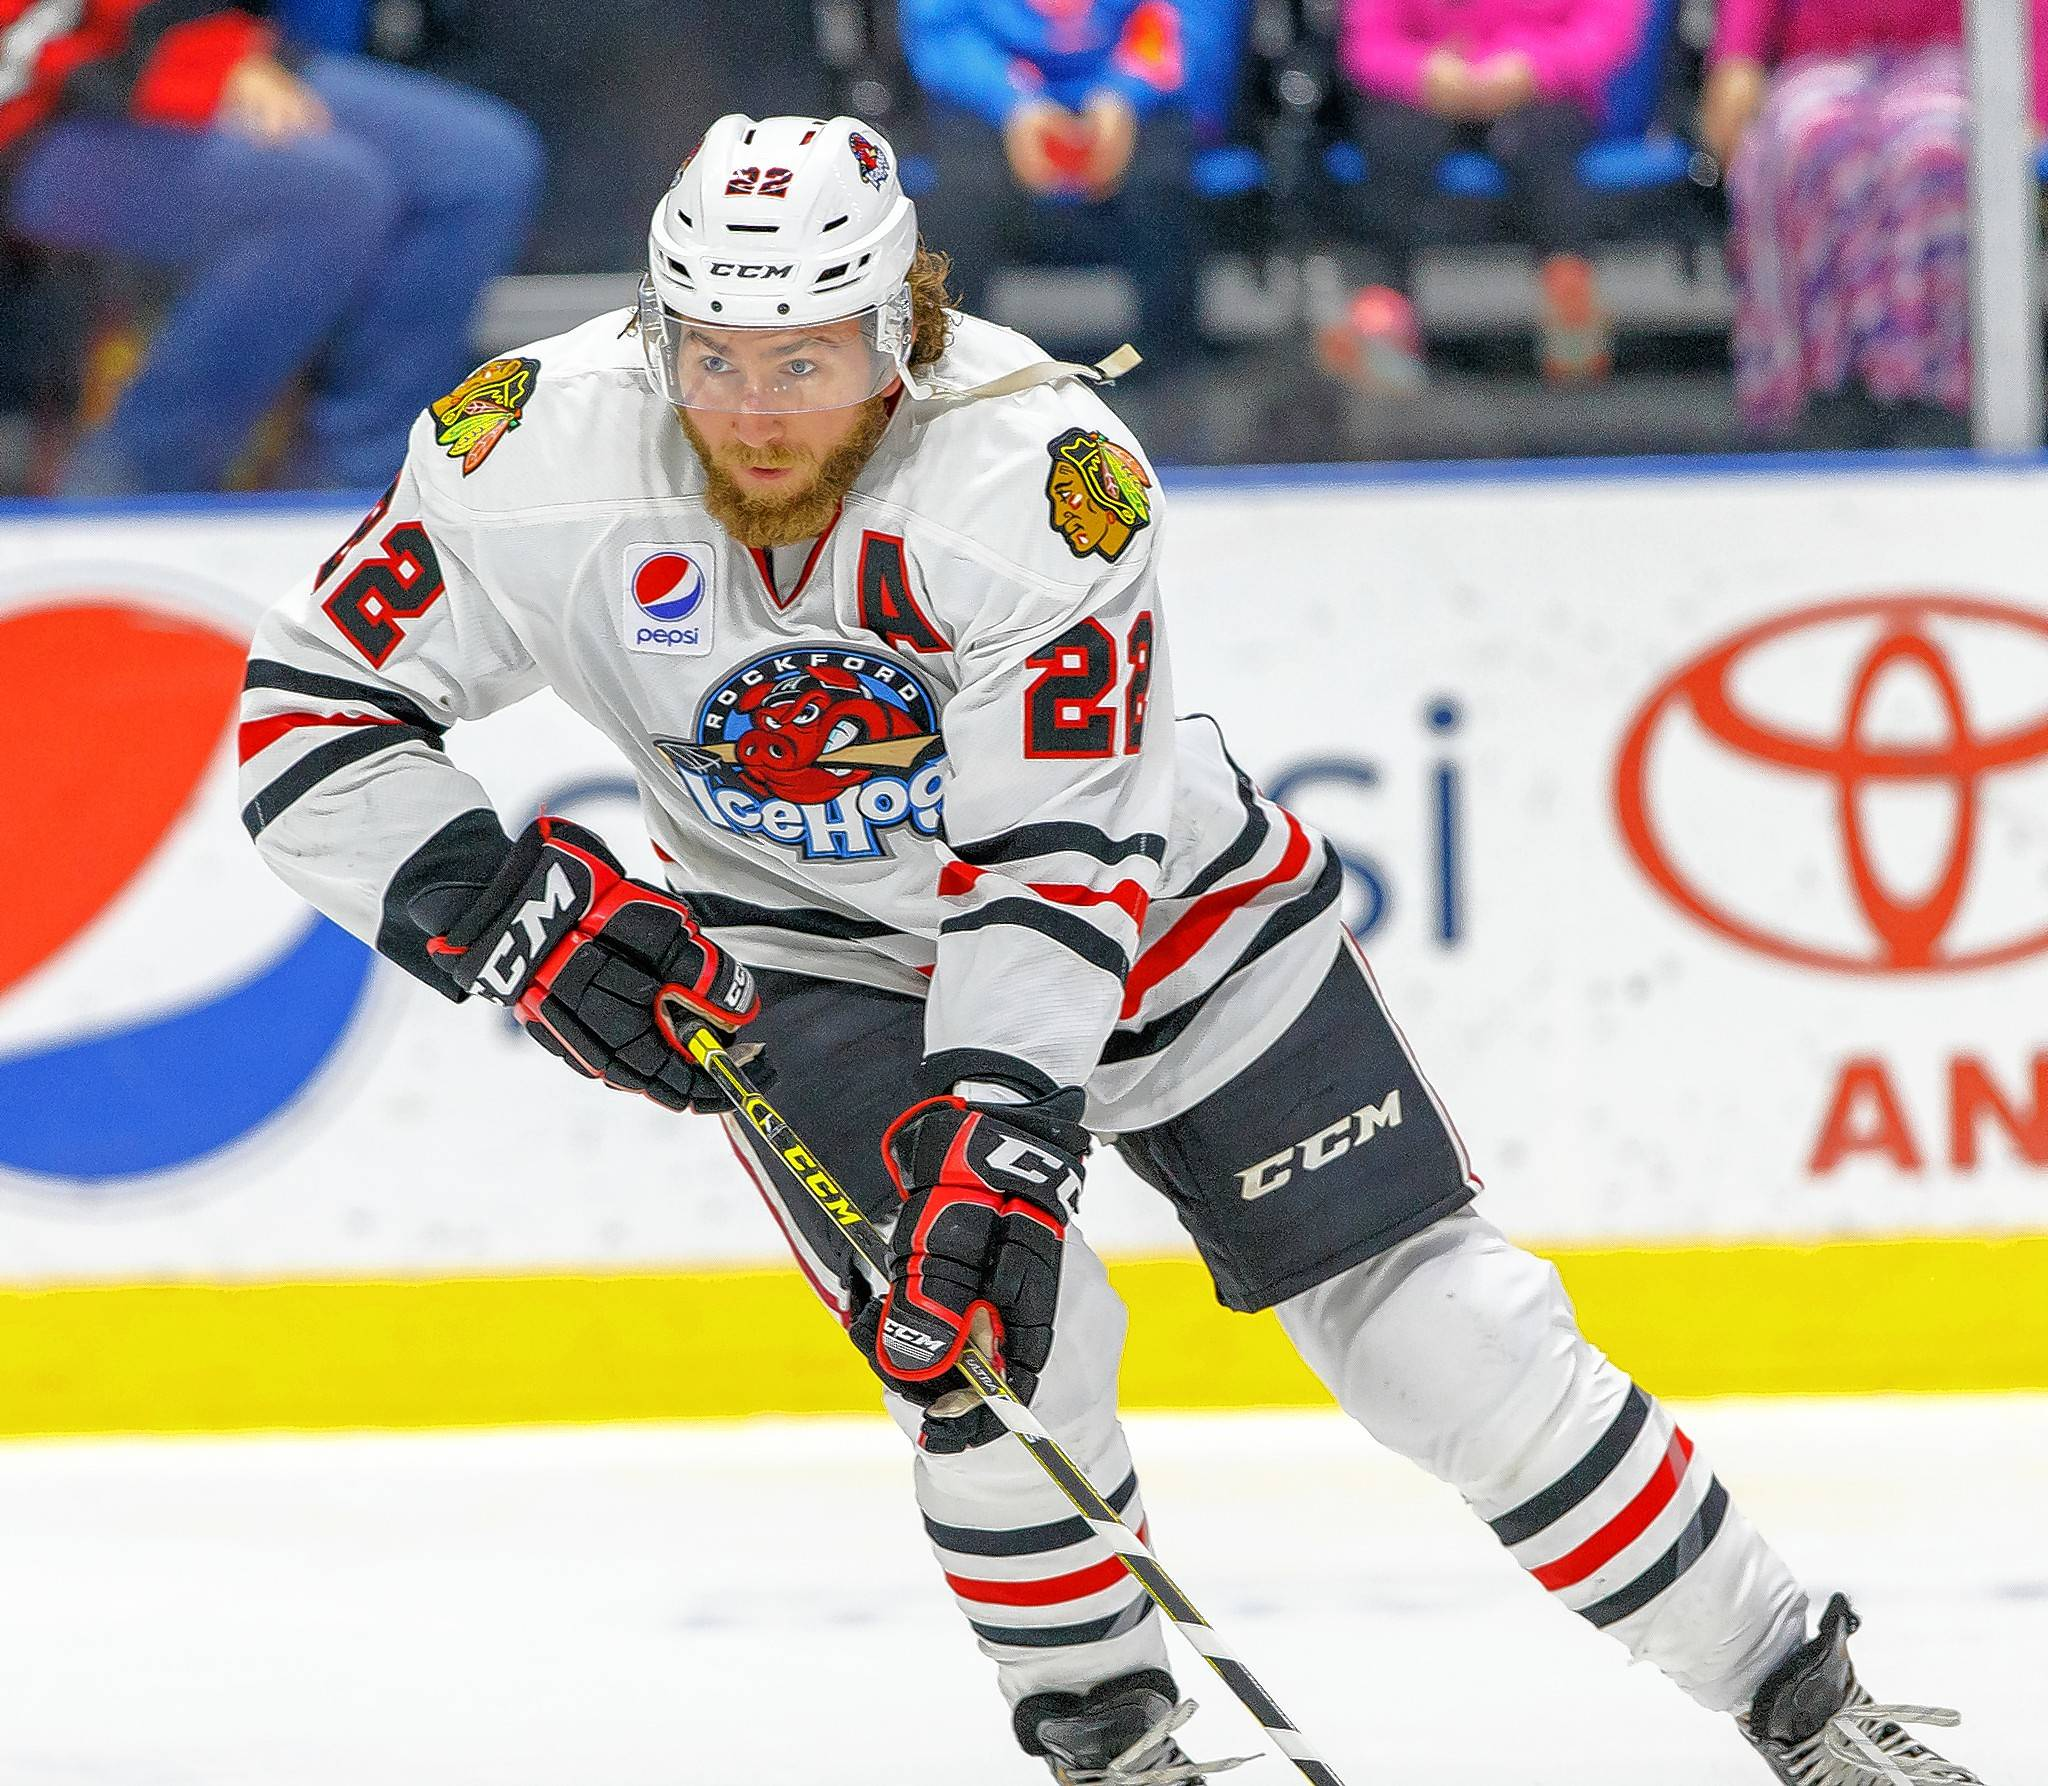 Pierre-Cedric Labrie of the Rockford IceHogs has logged a lot of time in the minors. The 30-year-old winger is in camp with the Blackhawks.